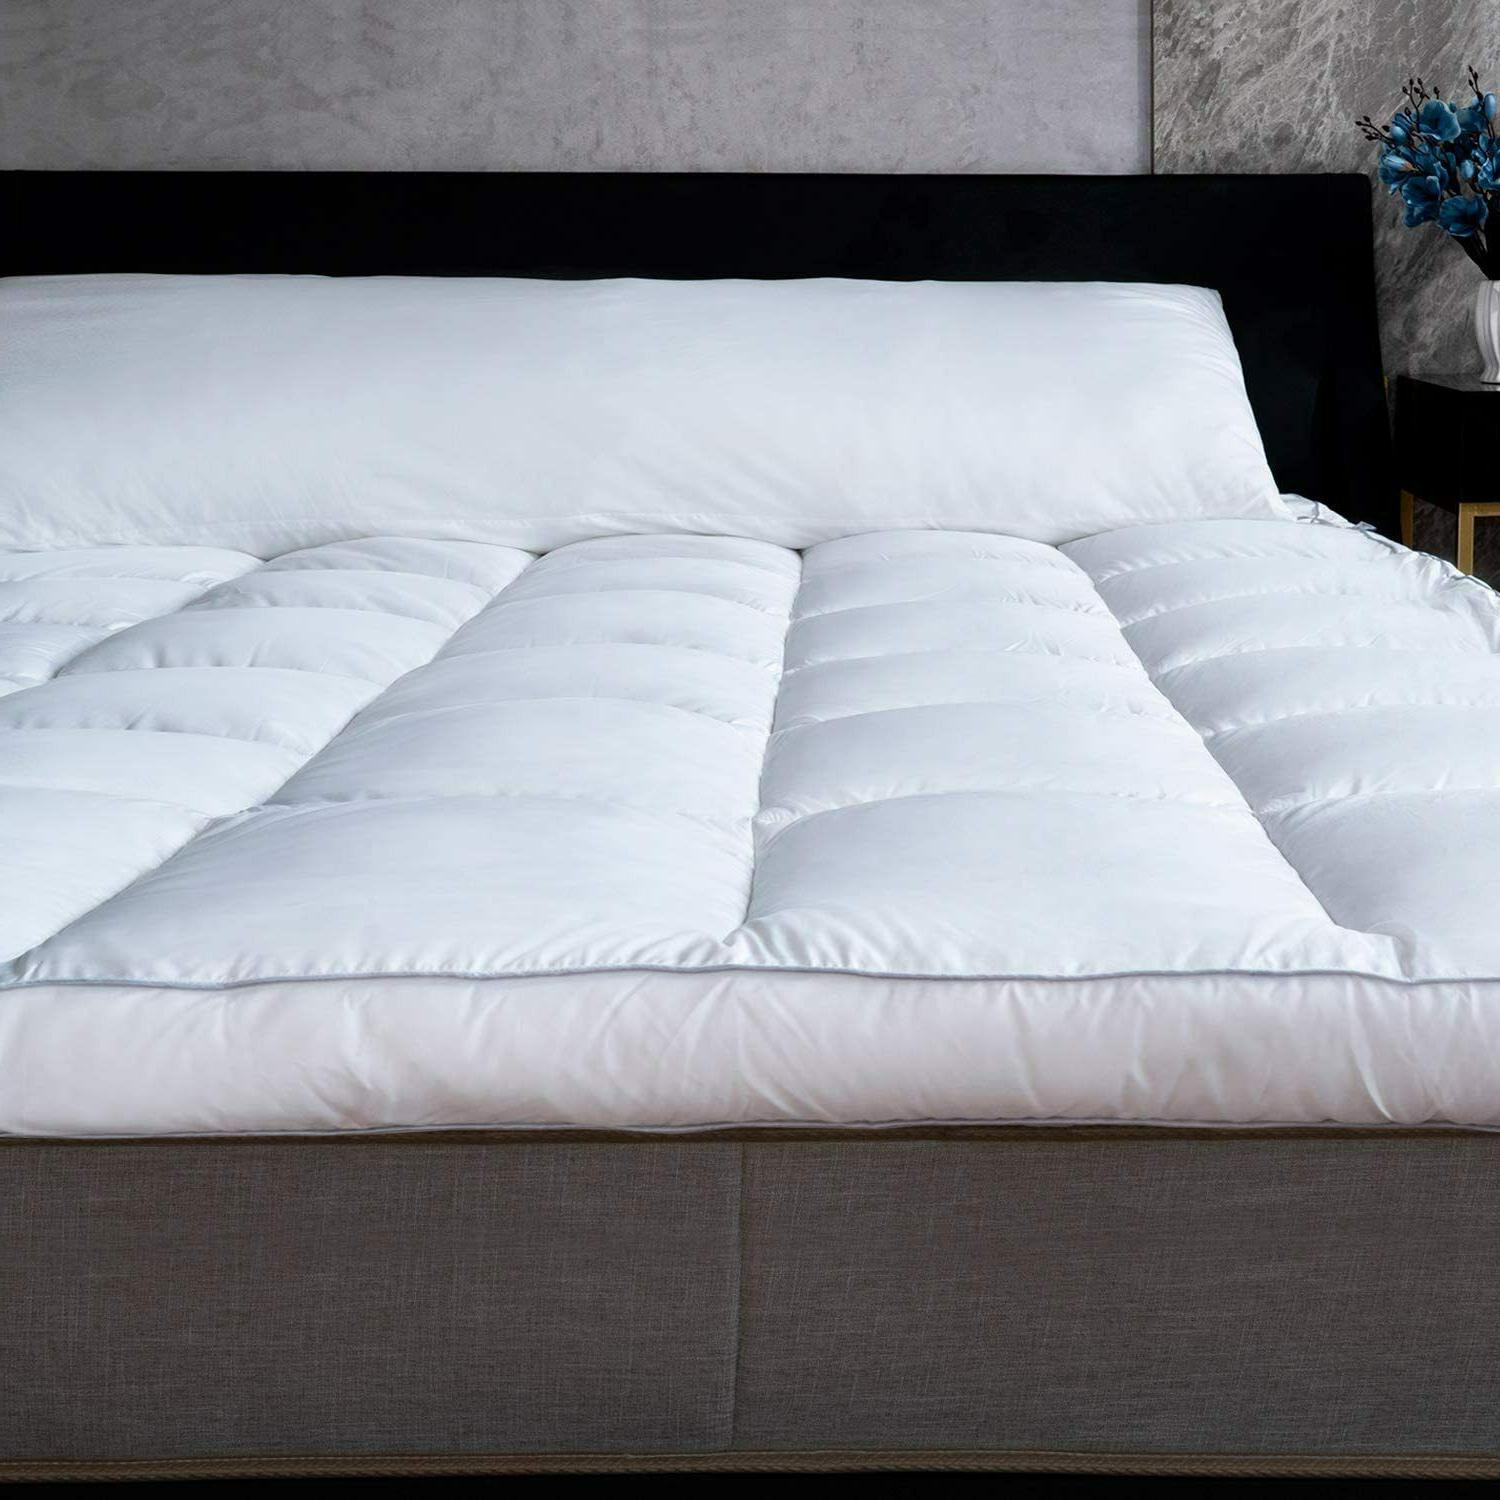 Mattress Topper Top Bed Soft Down Alternative 3-Inch Thick NEW